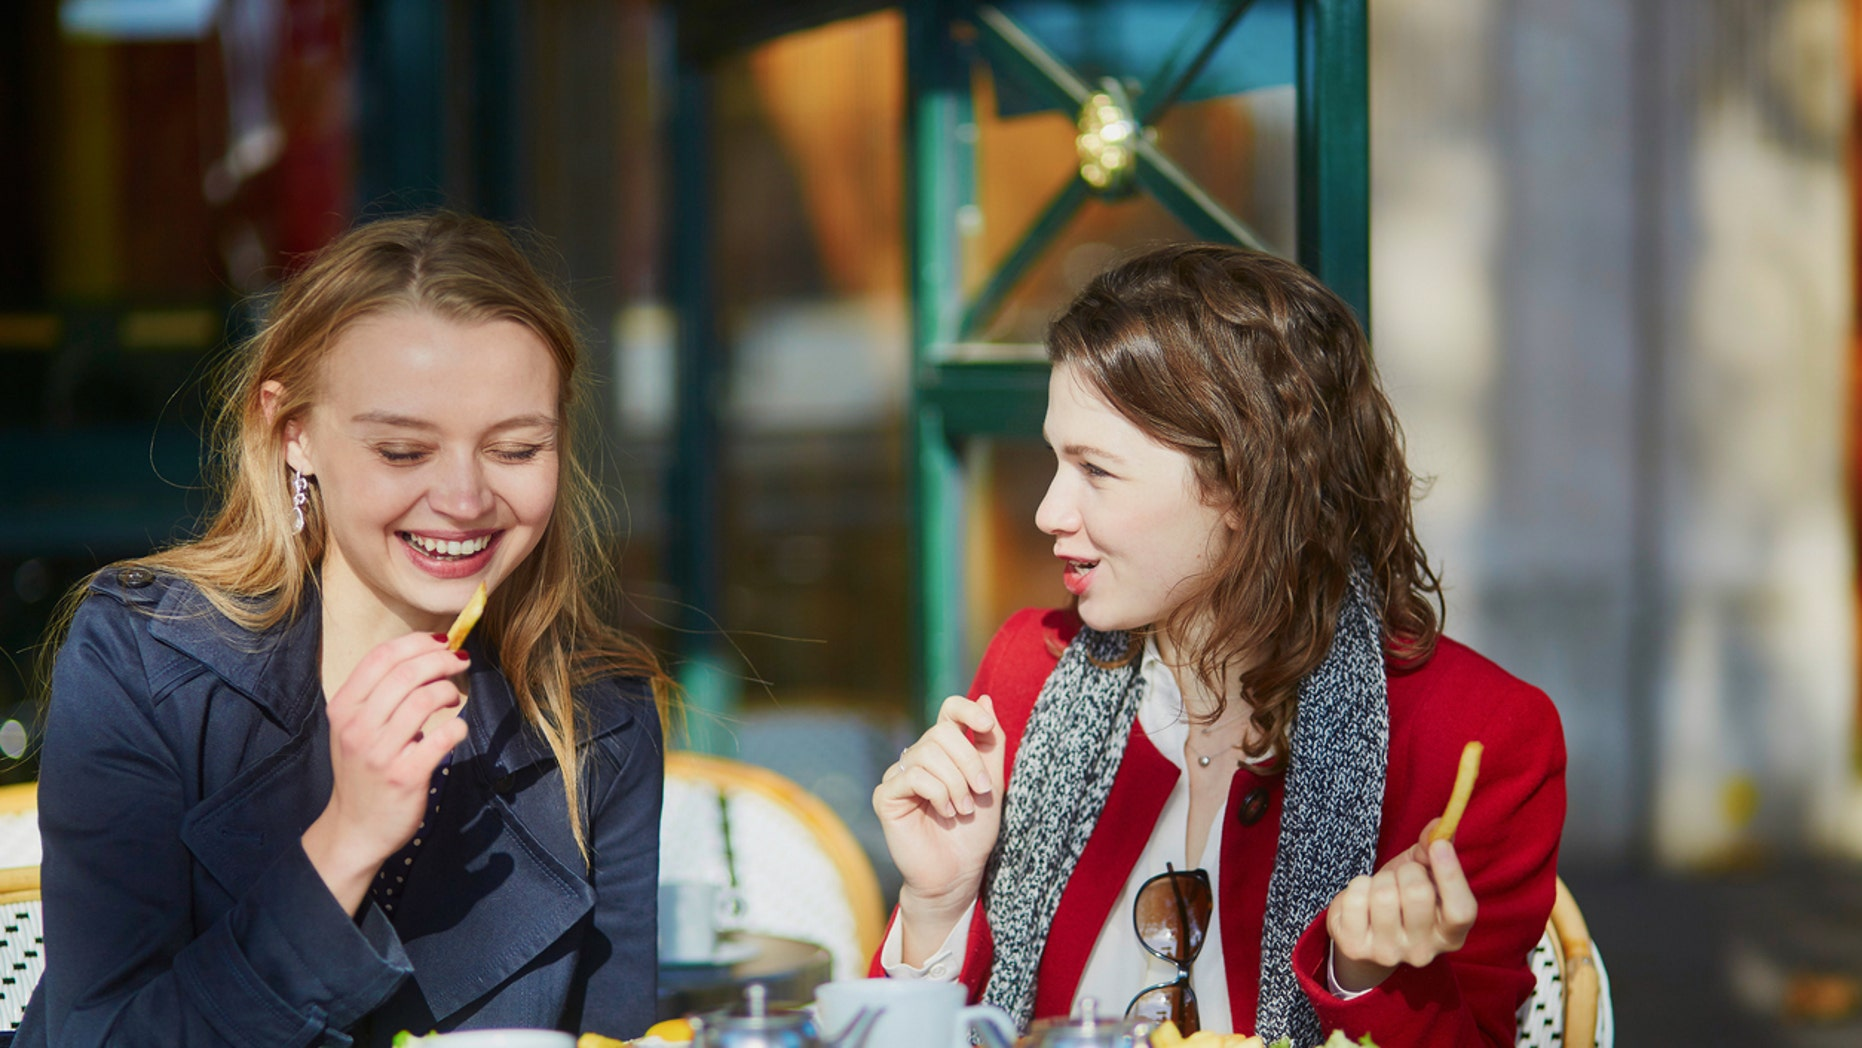 Two young girls in outdoor cafe, eating French fries.